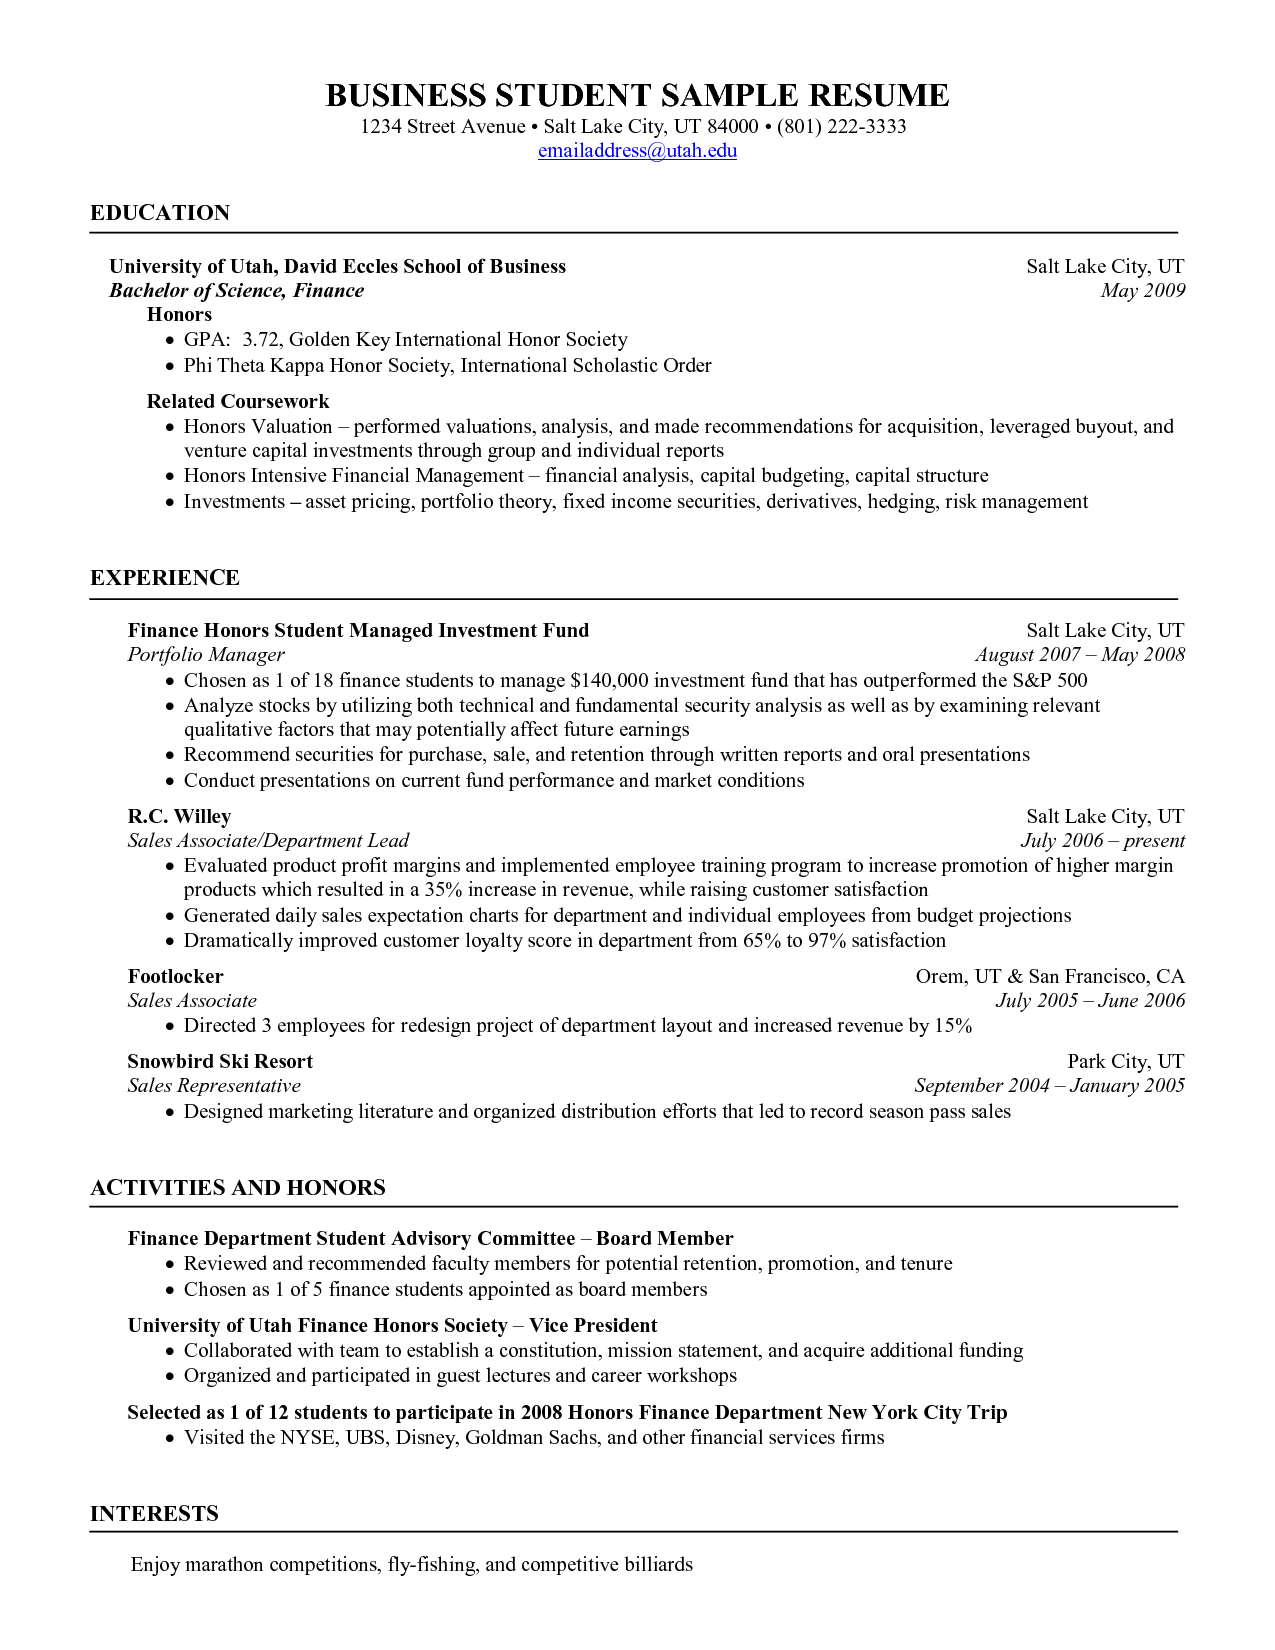 Resumes For Students Stockroom Manager Resume  Httpwwwresumecareerstockroom